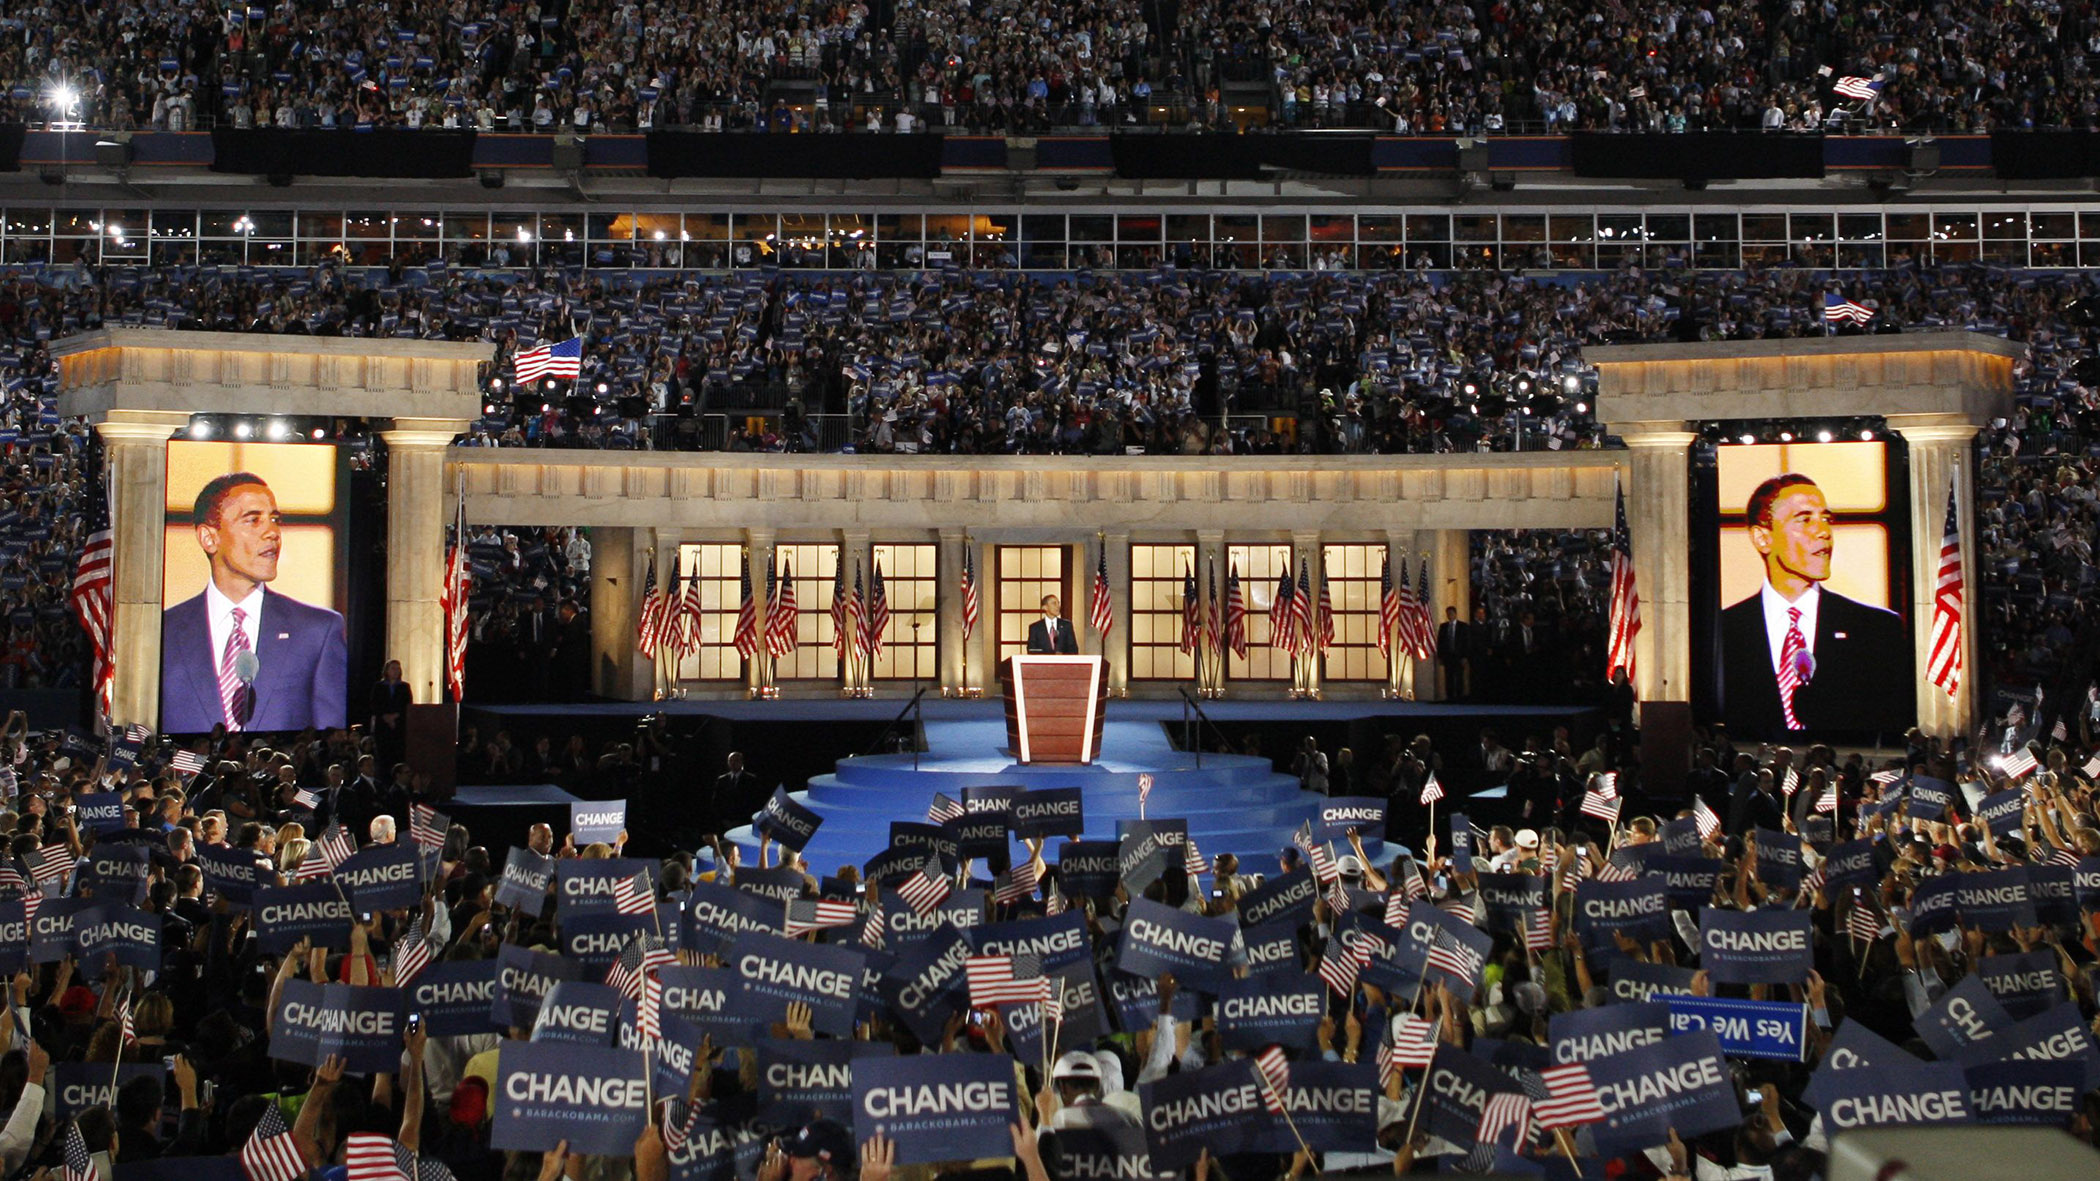 Democratic presidential nominee, Sen. Barack Obama, D-Ill., gives his acceptance speech at the Democratic National Convention in Denver, Thursday, Aug. 28, 2008. (AP Photo/Ron Edmonds)